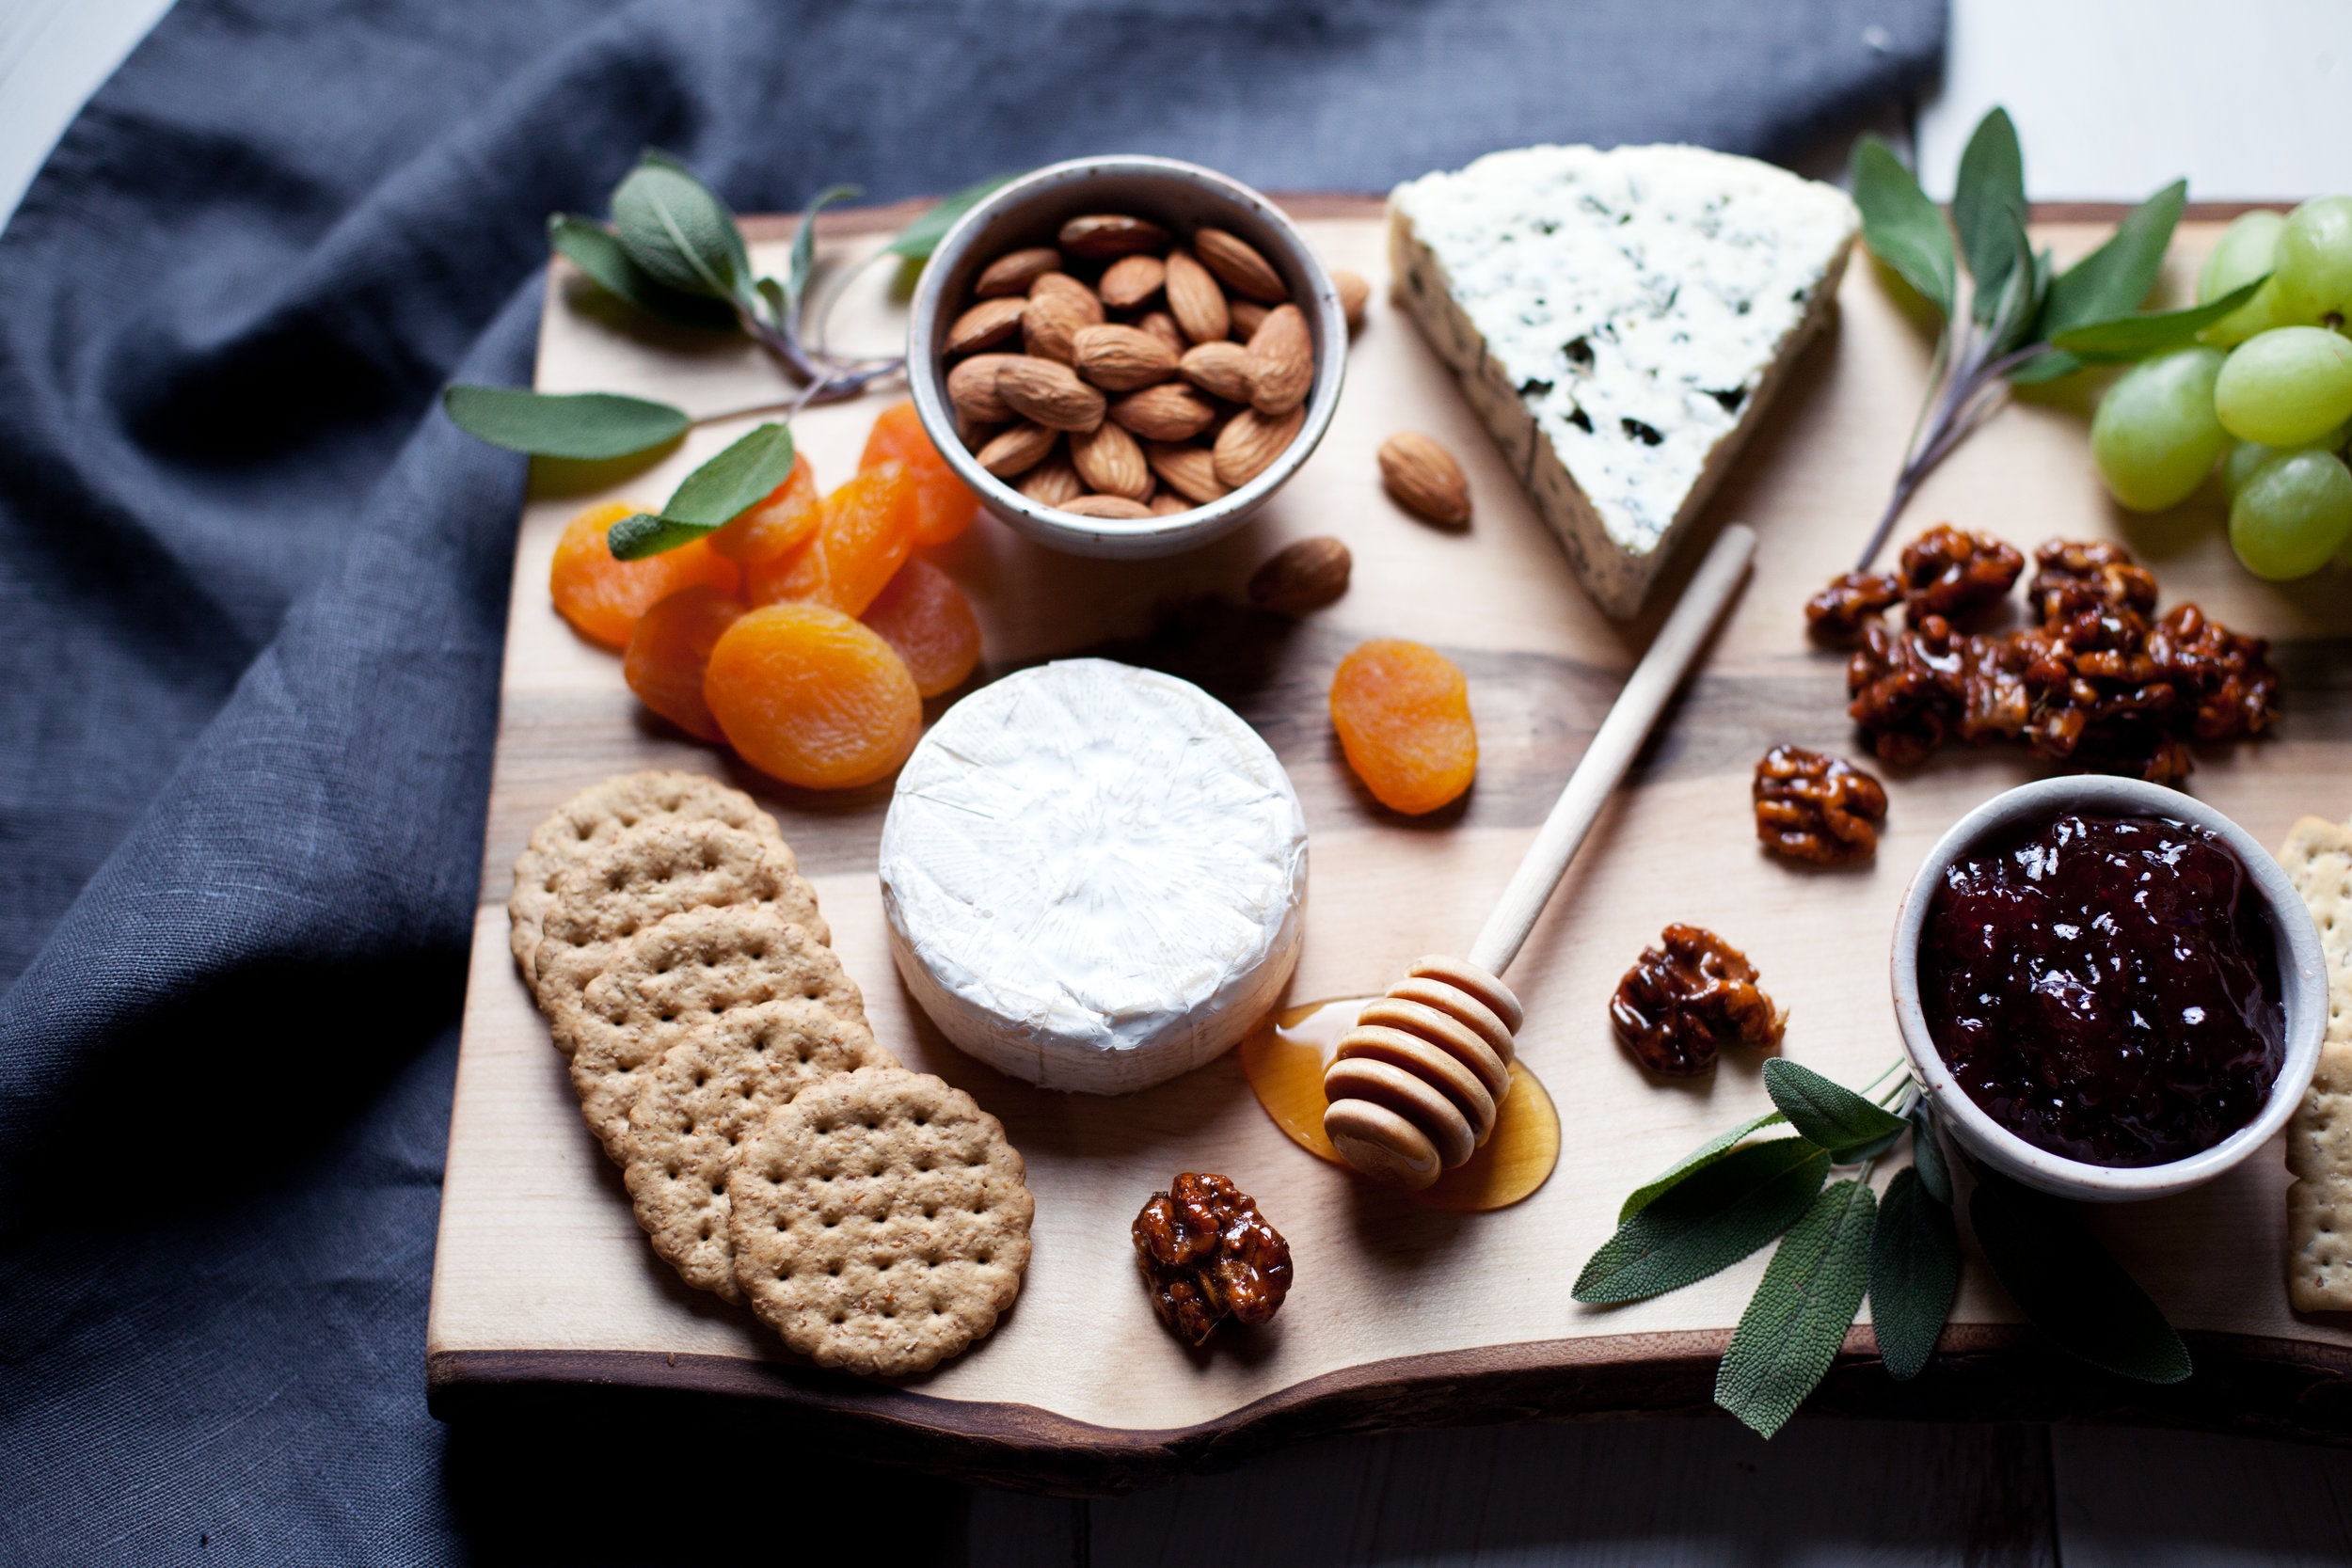 castello sweet cheese board v.jpg